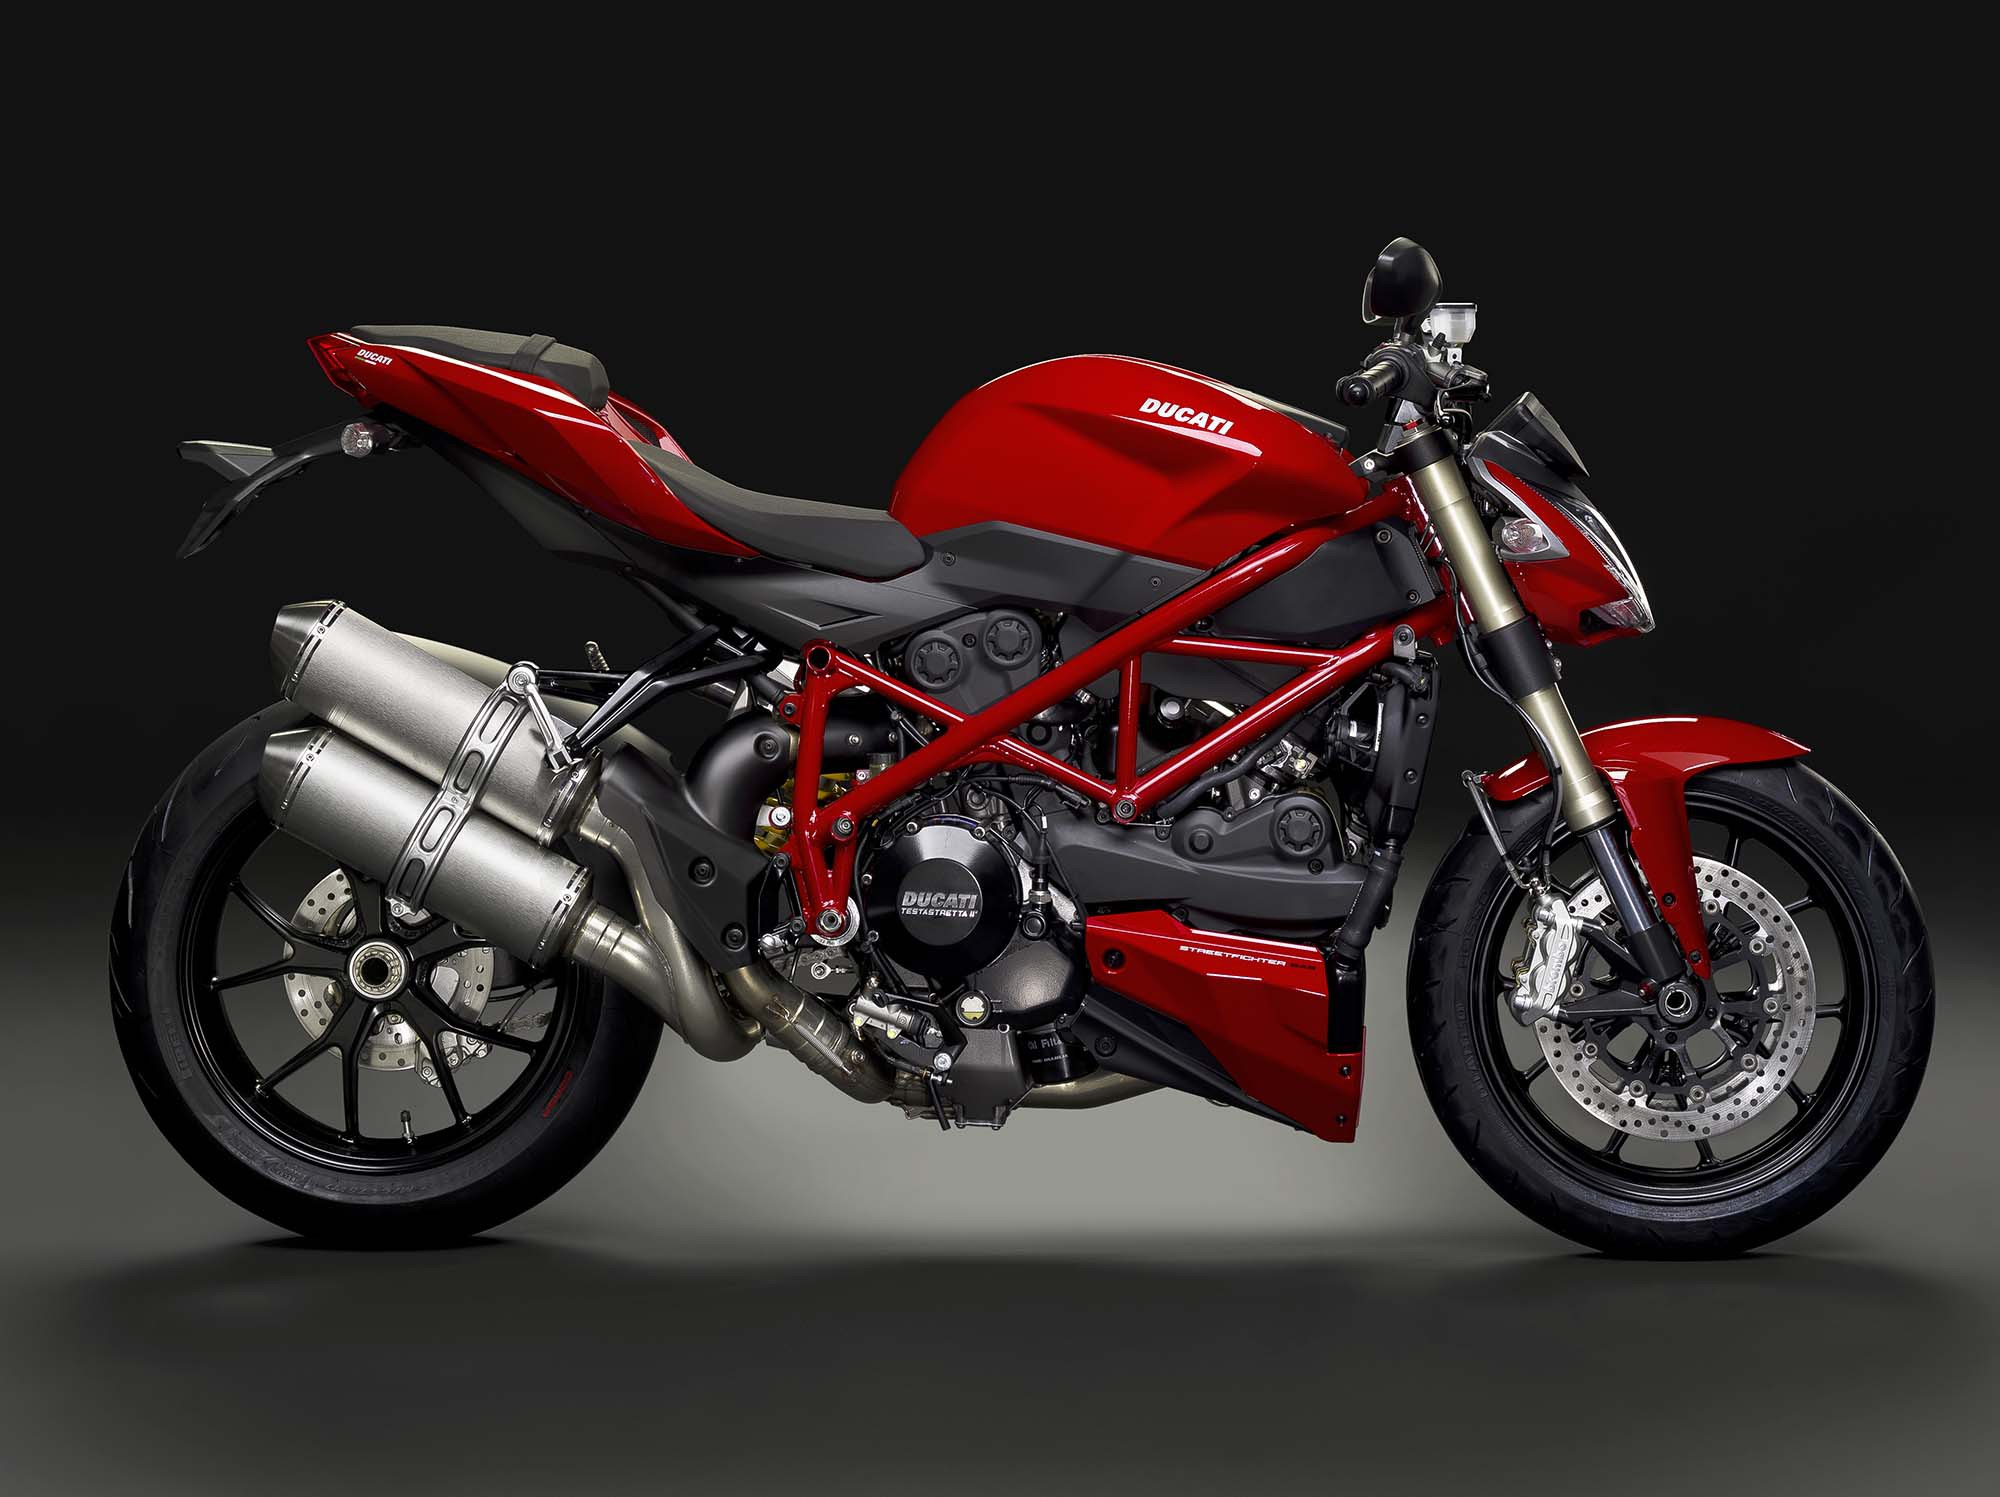 ... Ducati Streetfighter 848 Wallpapers #13410 ...